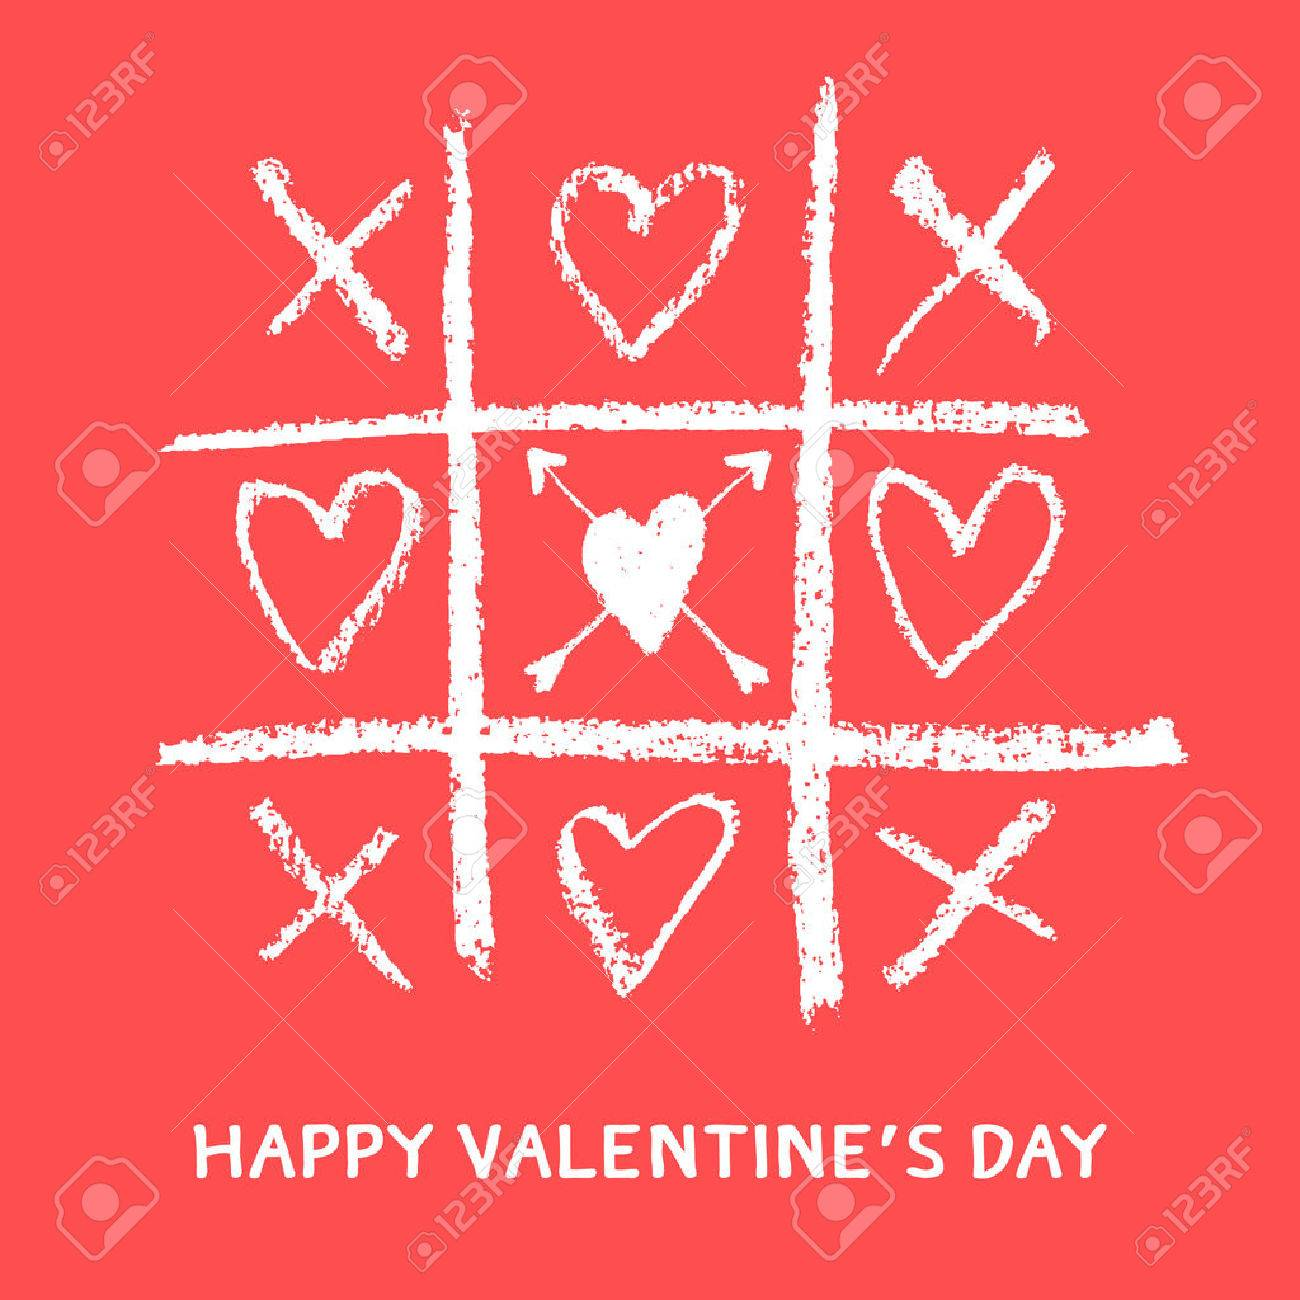 Happy Valentines Day Greeting Cardxoxohug And Kiss Royalty Free